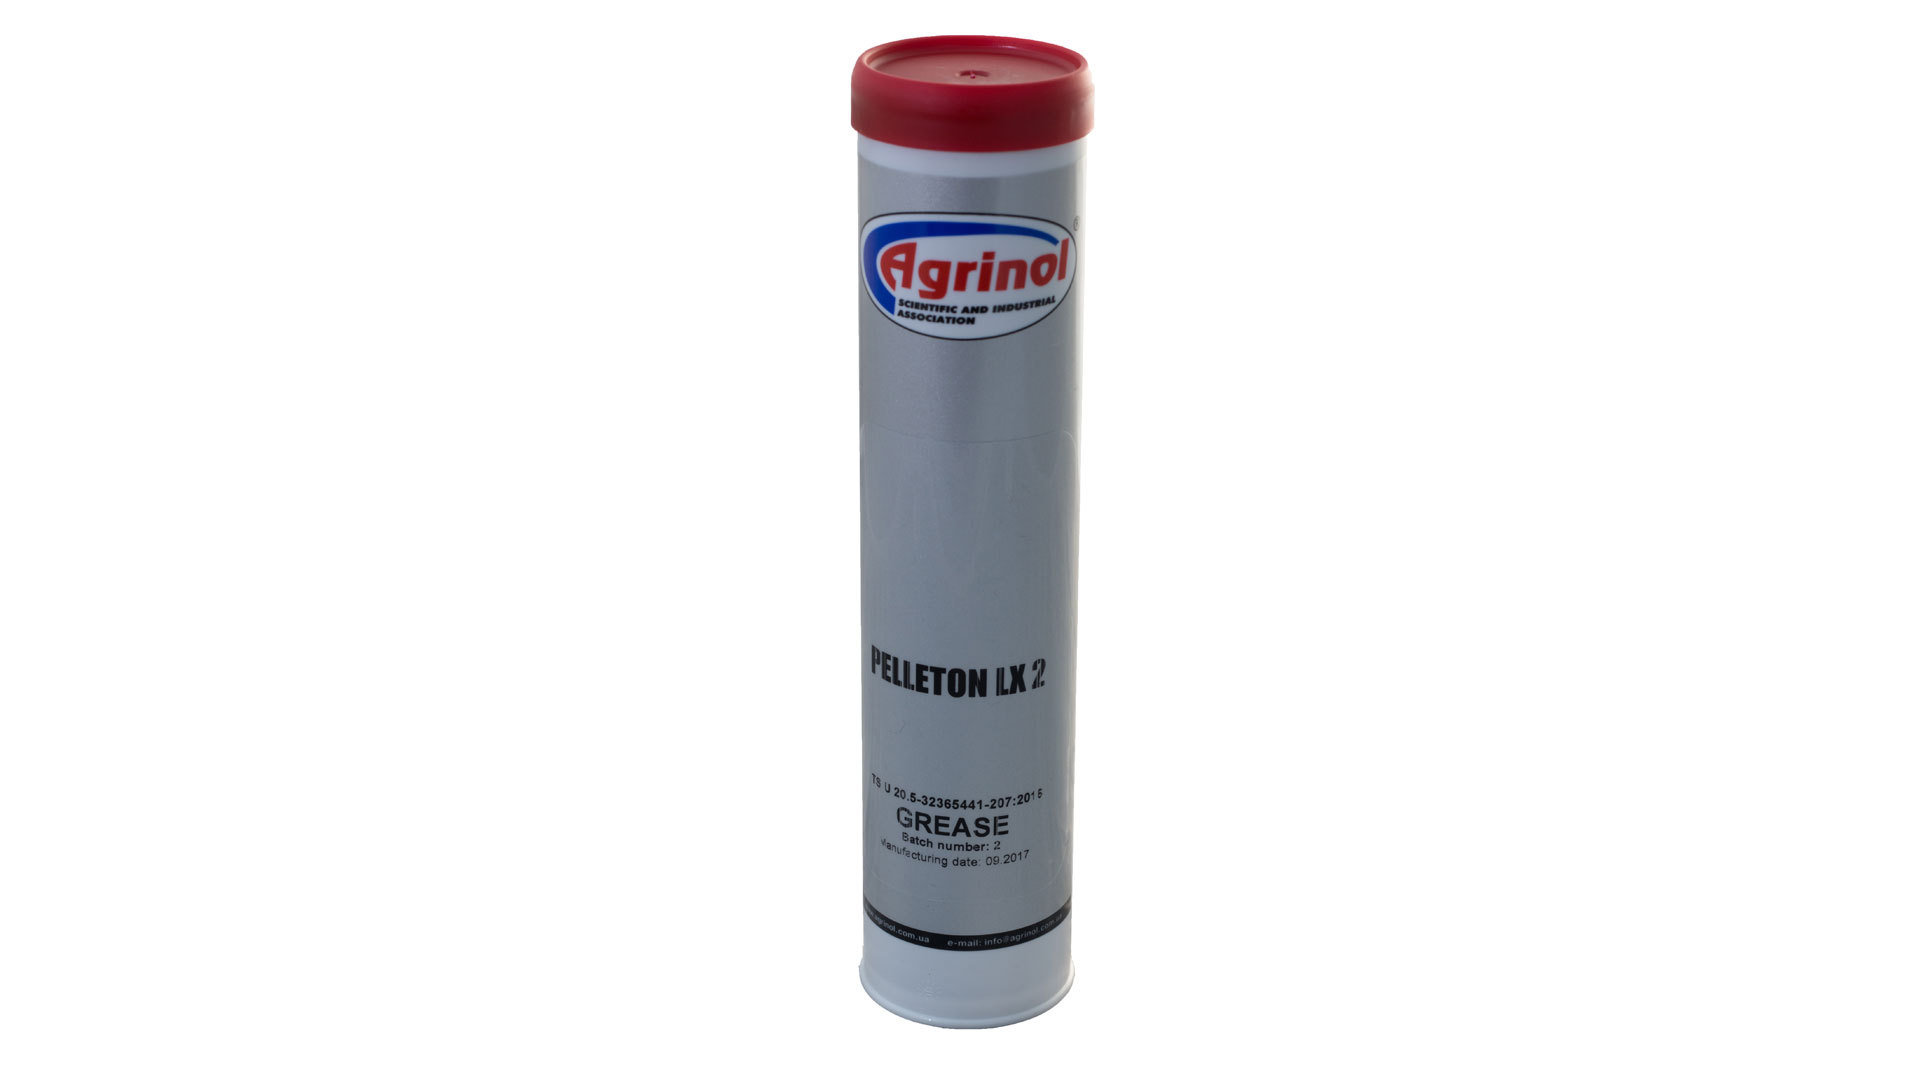 AGRINOL PELLETON GREASE LX2 400g